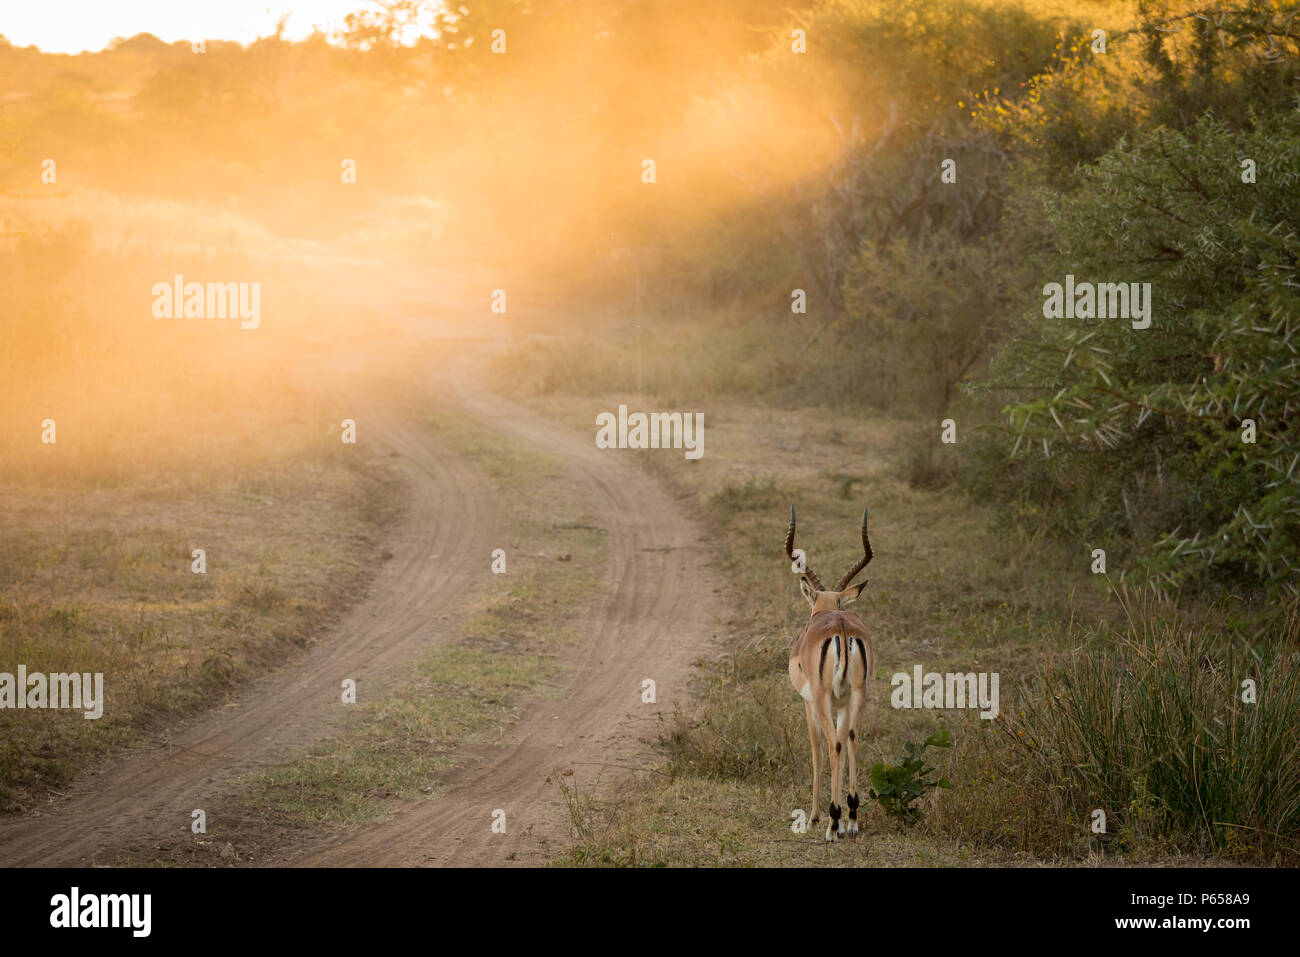 Impala with golden light at dawn on safari Stock Photo